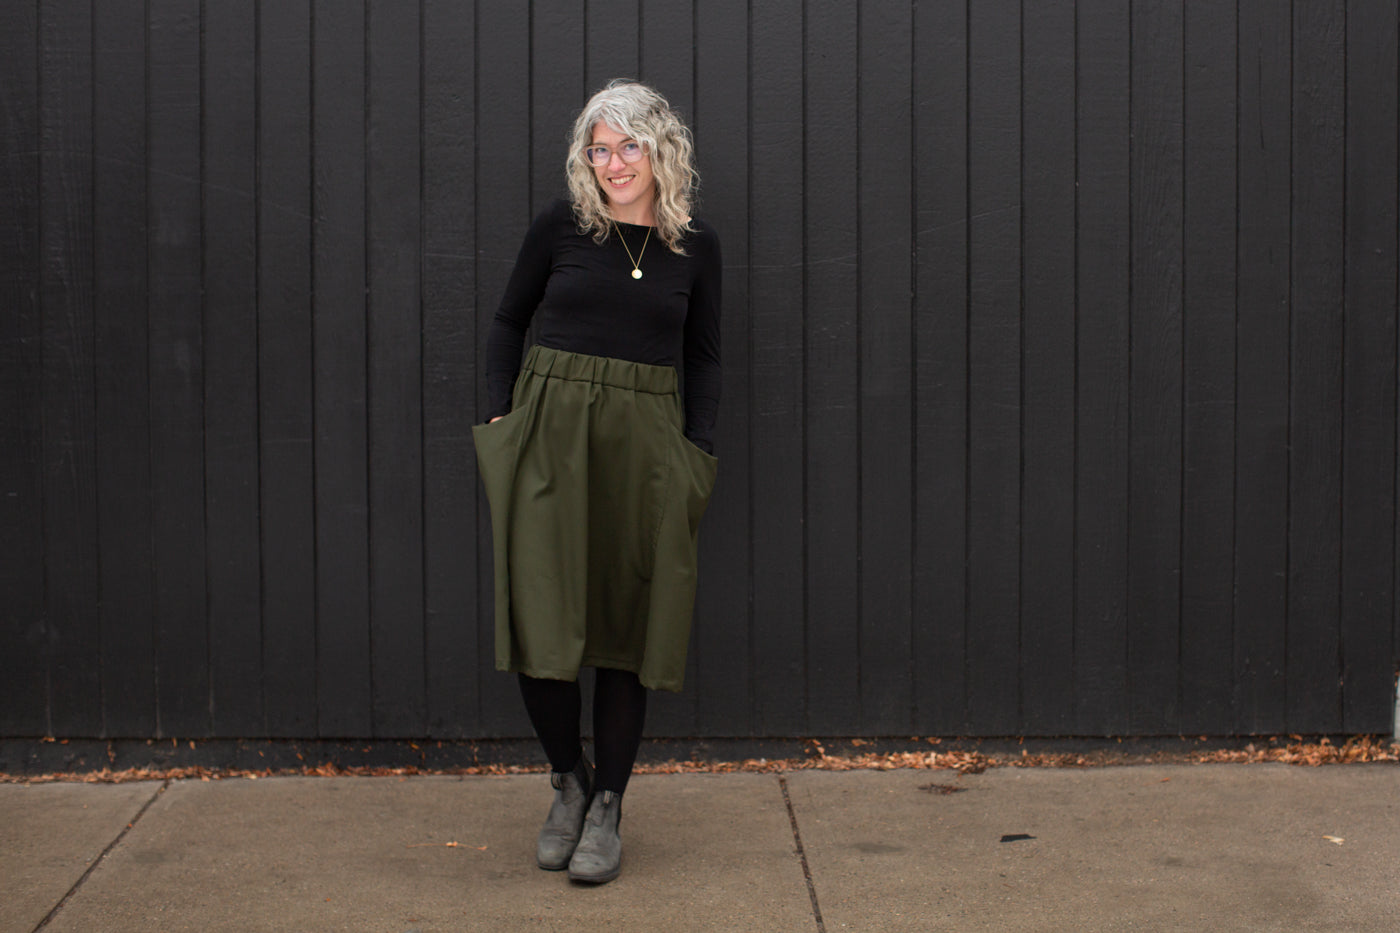 Jaime standing against a black wall looking at the camera smiling.  Jaime is wearing a black long sleeve shirt, olive green skirt, black leggings and black shoes.